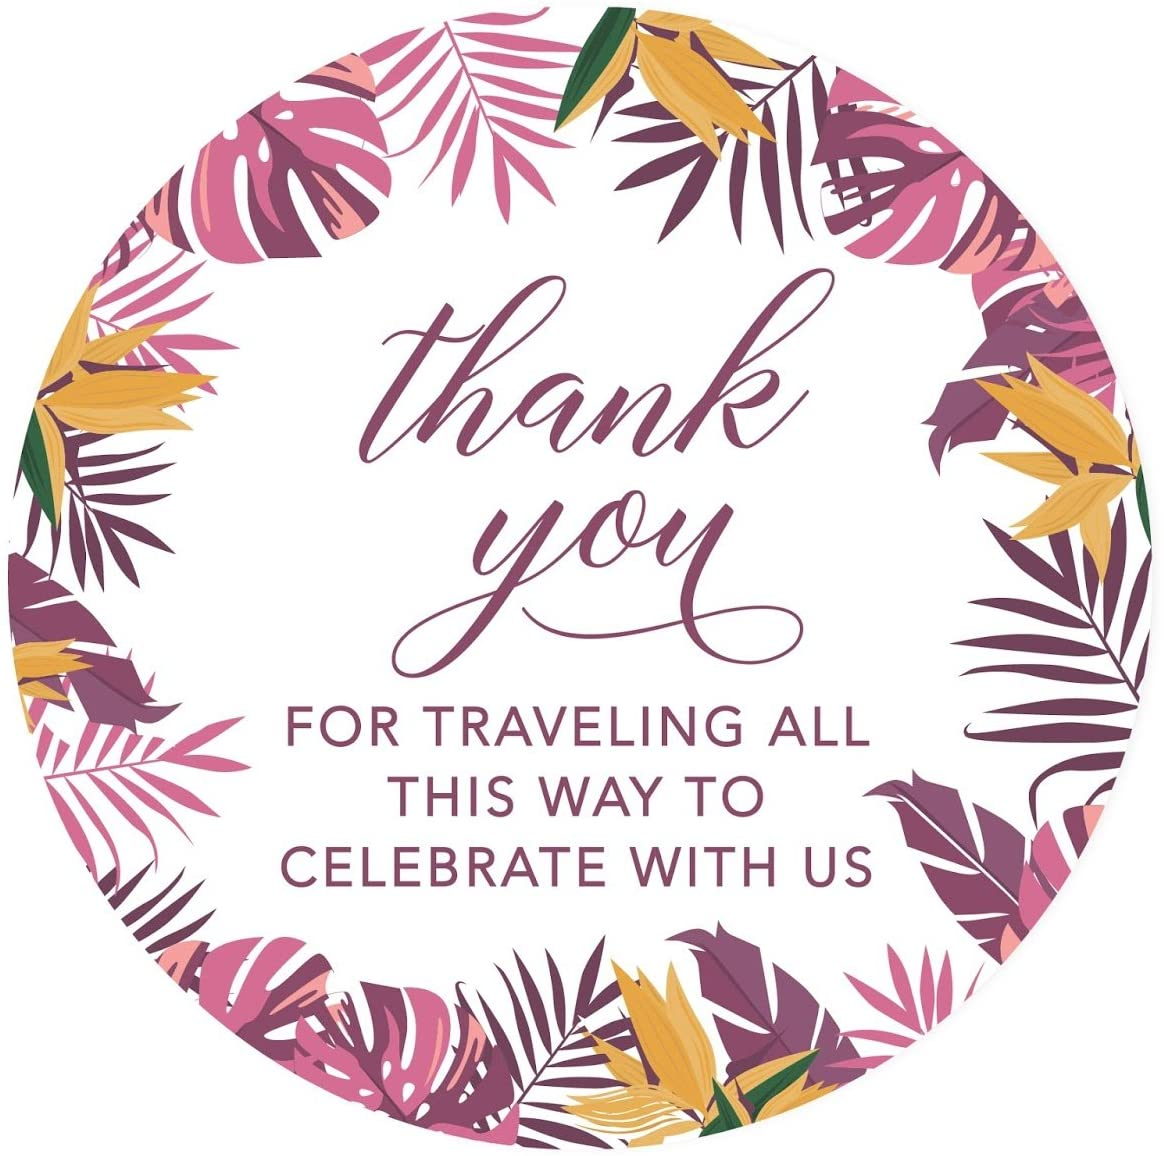 Andaz Press Tropical Palm Leaves Round Circle Label Stickers, 2-inch, Purple and Yellow, Thanks for Traveling All This Way to Celebrate with US, 40-Pack